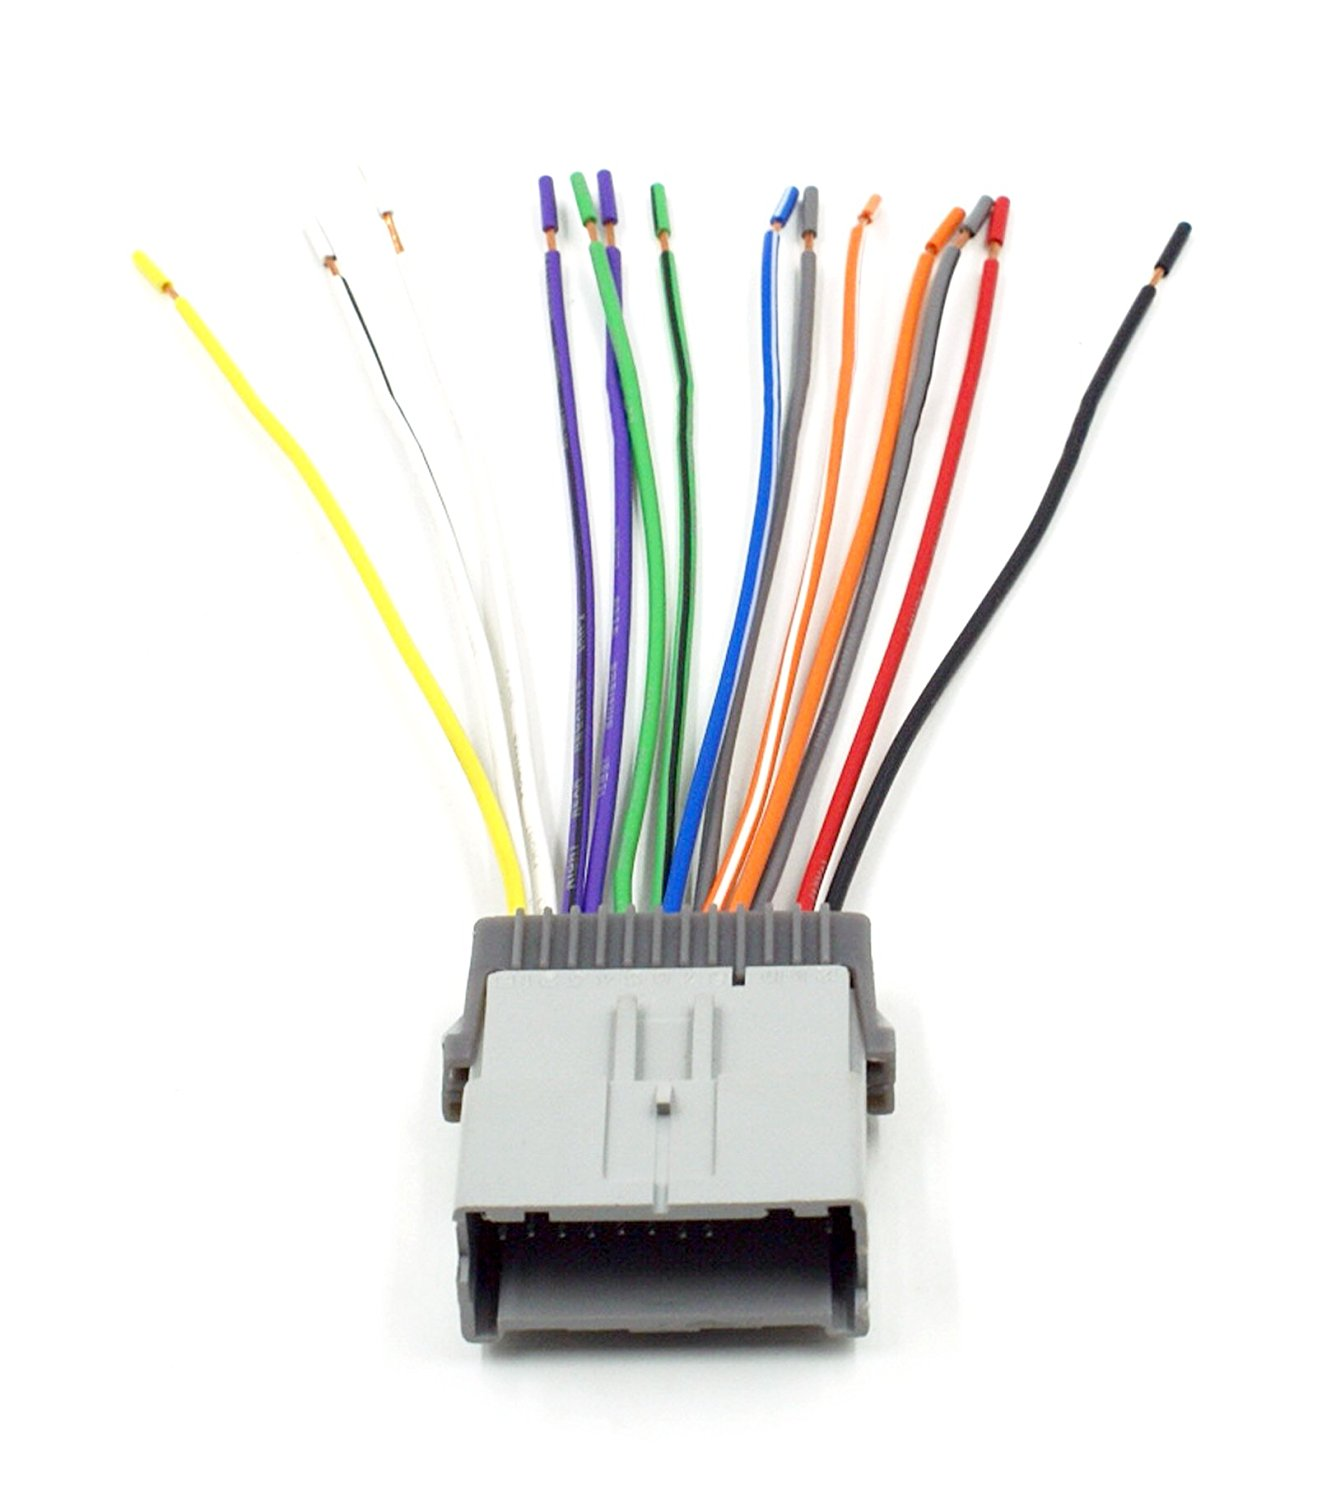 medium resolution of dnf saturn ion vue wiring harness for aftermarket radios cardnf saturn ion vue wiring harness for